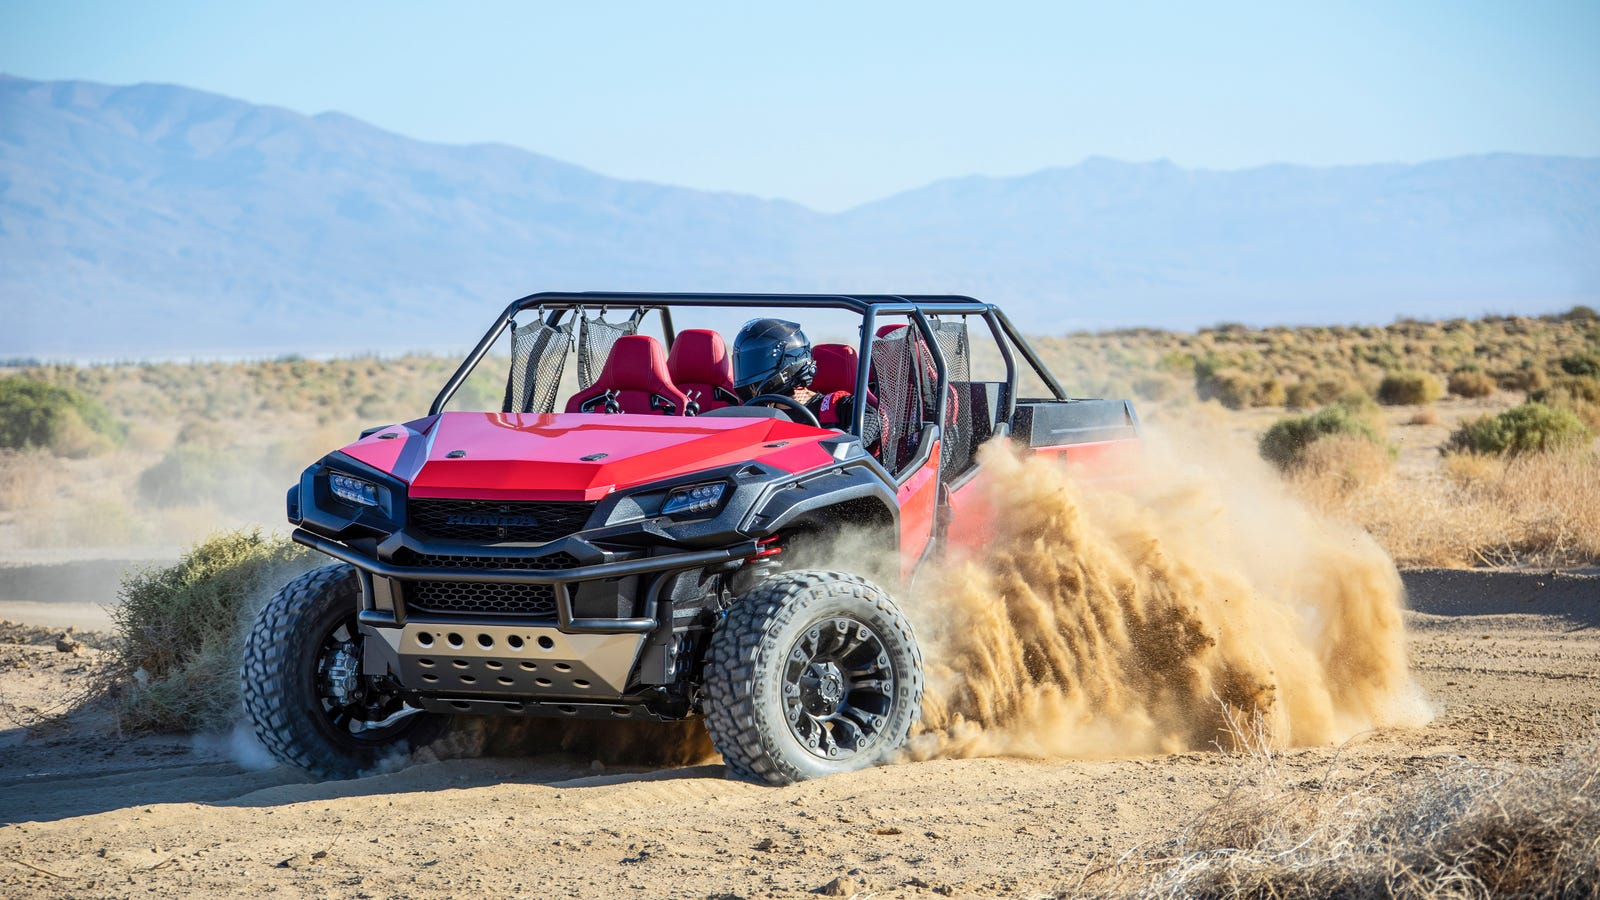 Honda Ridgeline Off Road >> This Honda Ridgeline Dune Buggy Proves That The Ridgeline ...